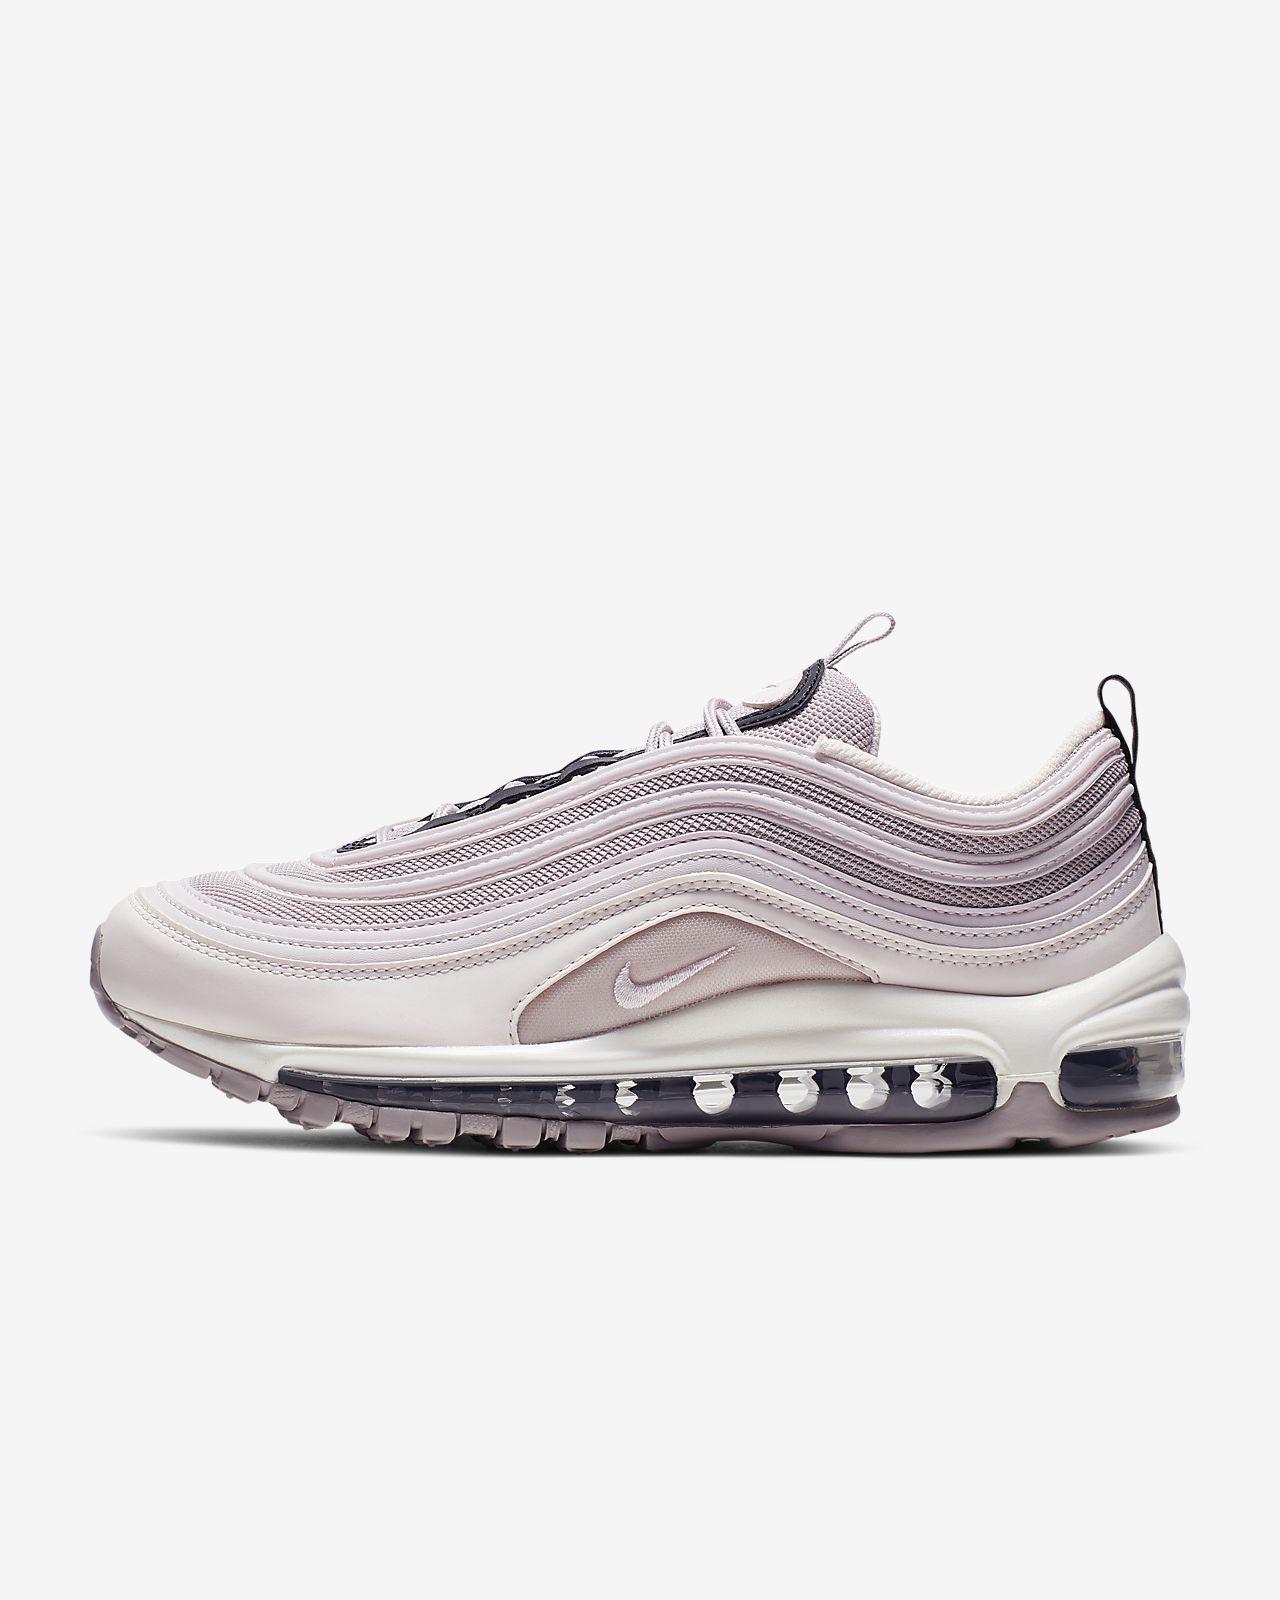 99c9512fb3d97 Nike Air Max 97 Women's Shoe. Nike.com